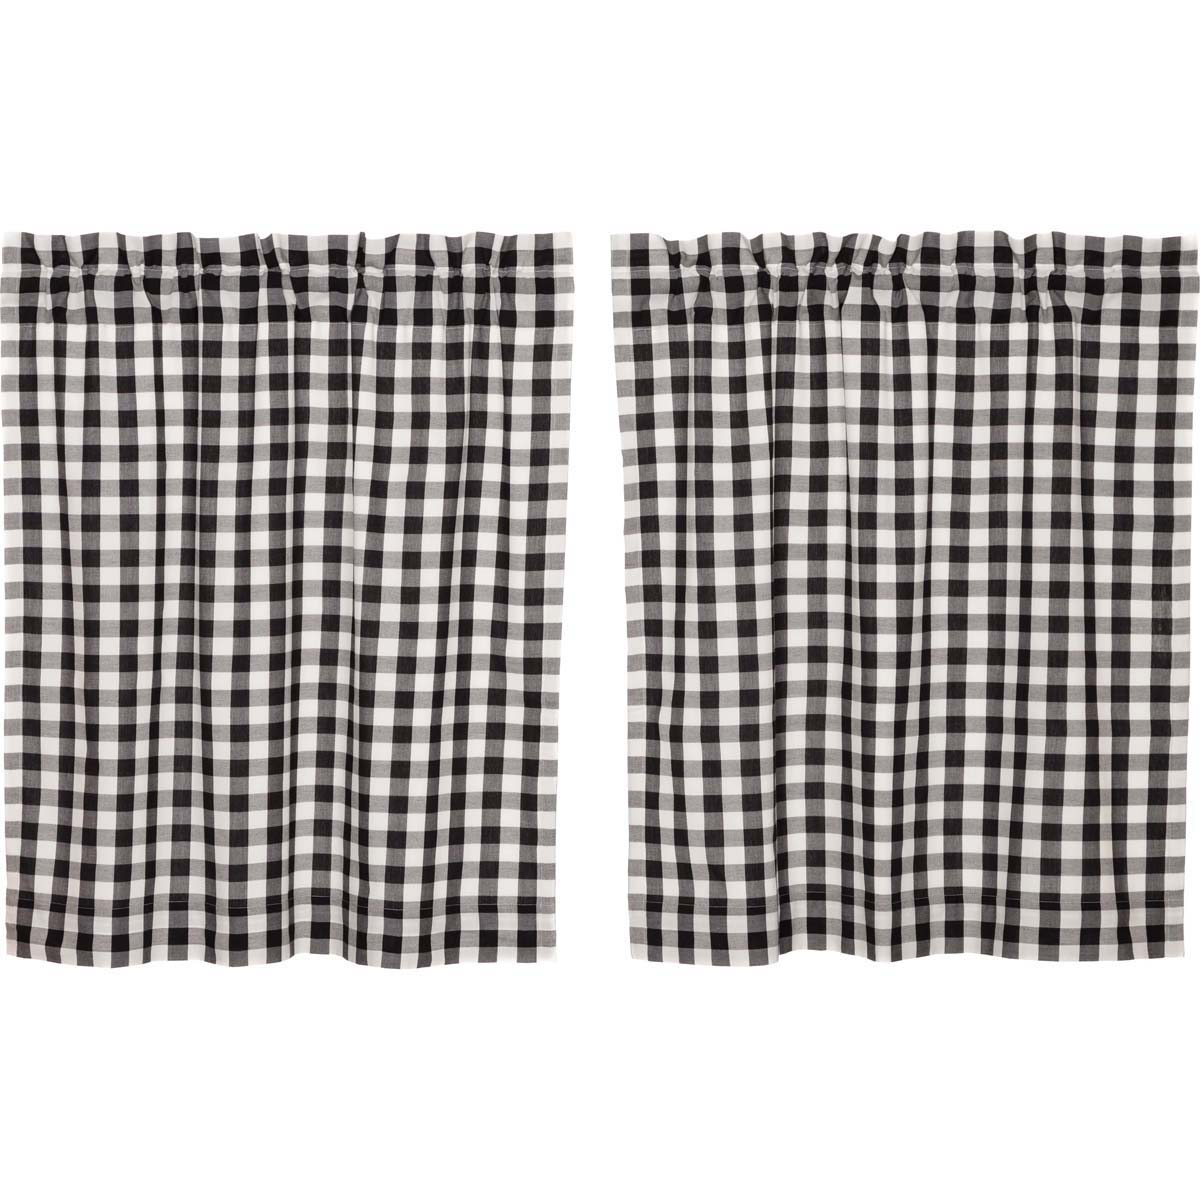 Annie Buffalo Black Check Tier Set of 2 L36xW36